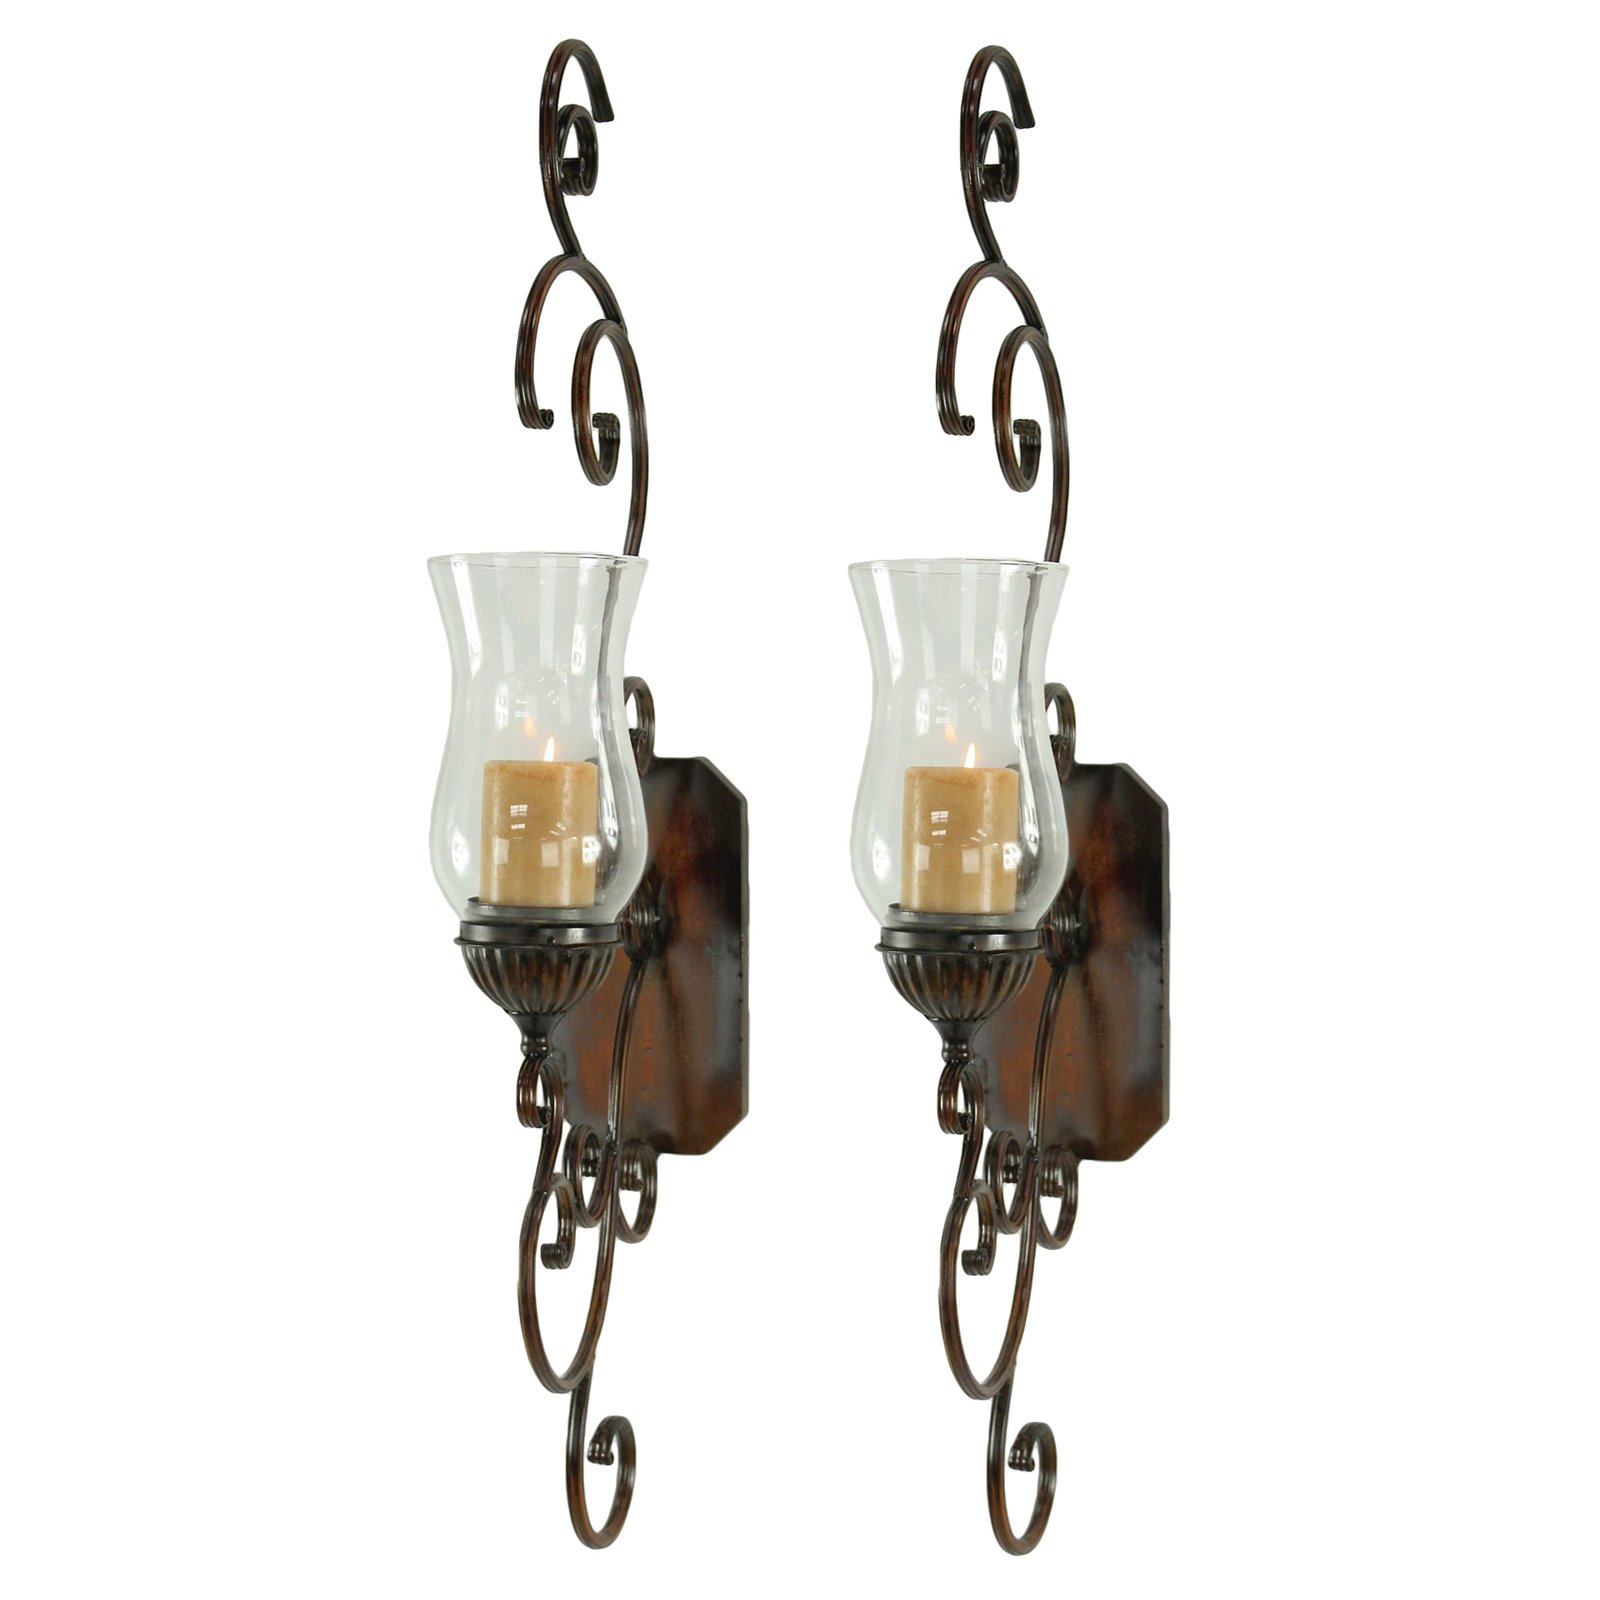 Aspire Home Accents Bentley Candle Wall Sconce - Set of 2